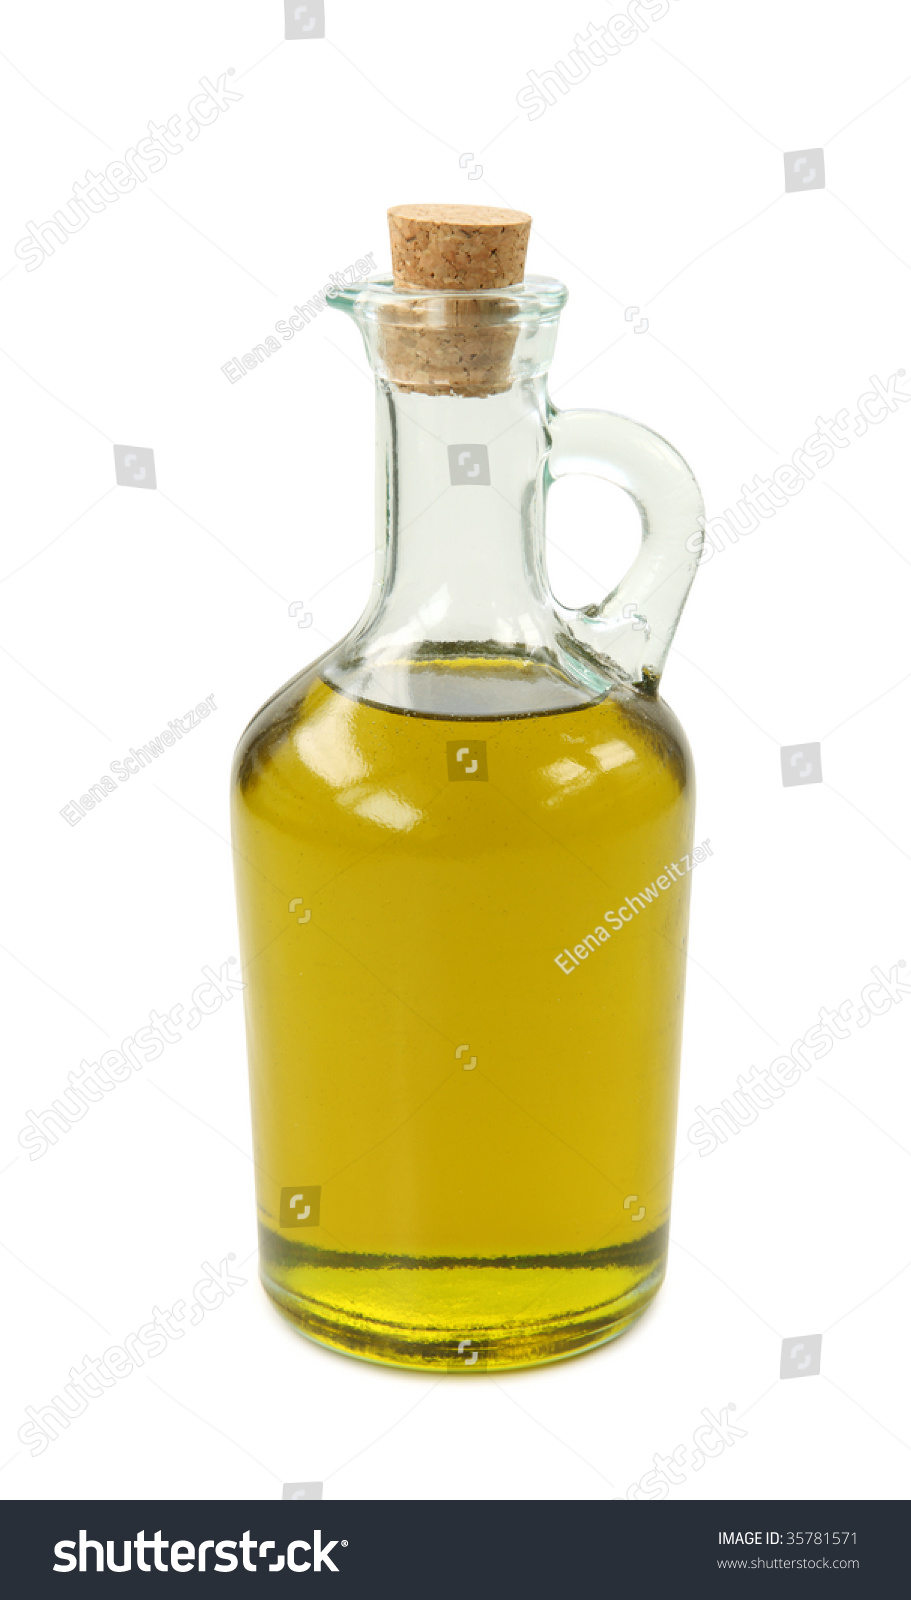 Bottle of olive oil on white background